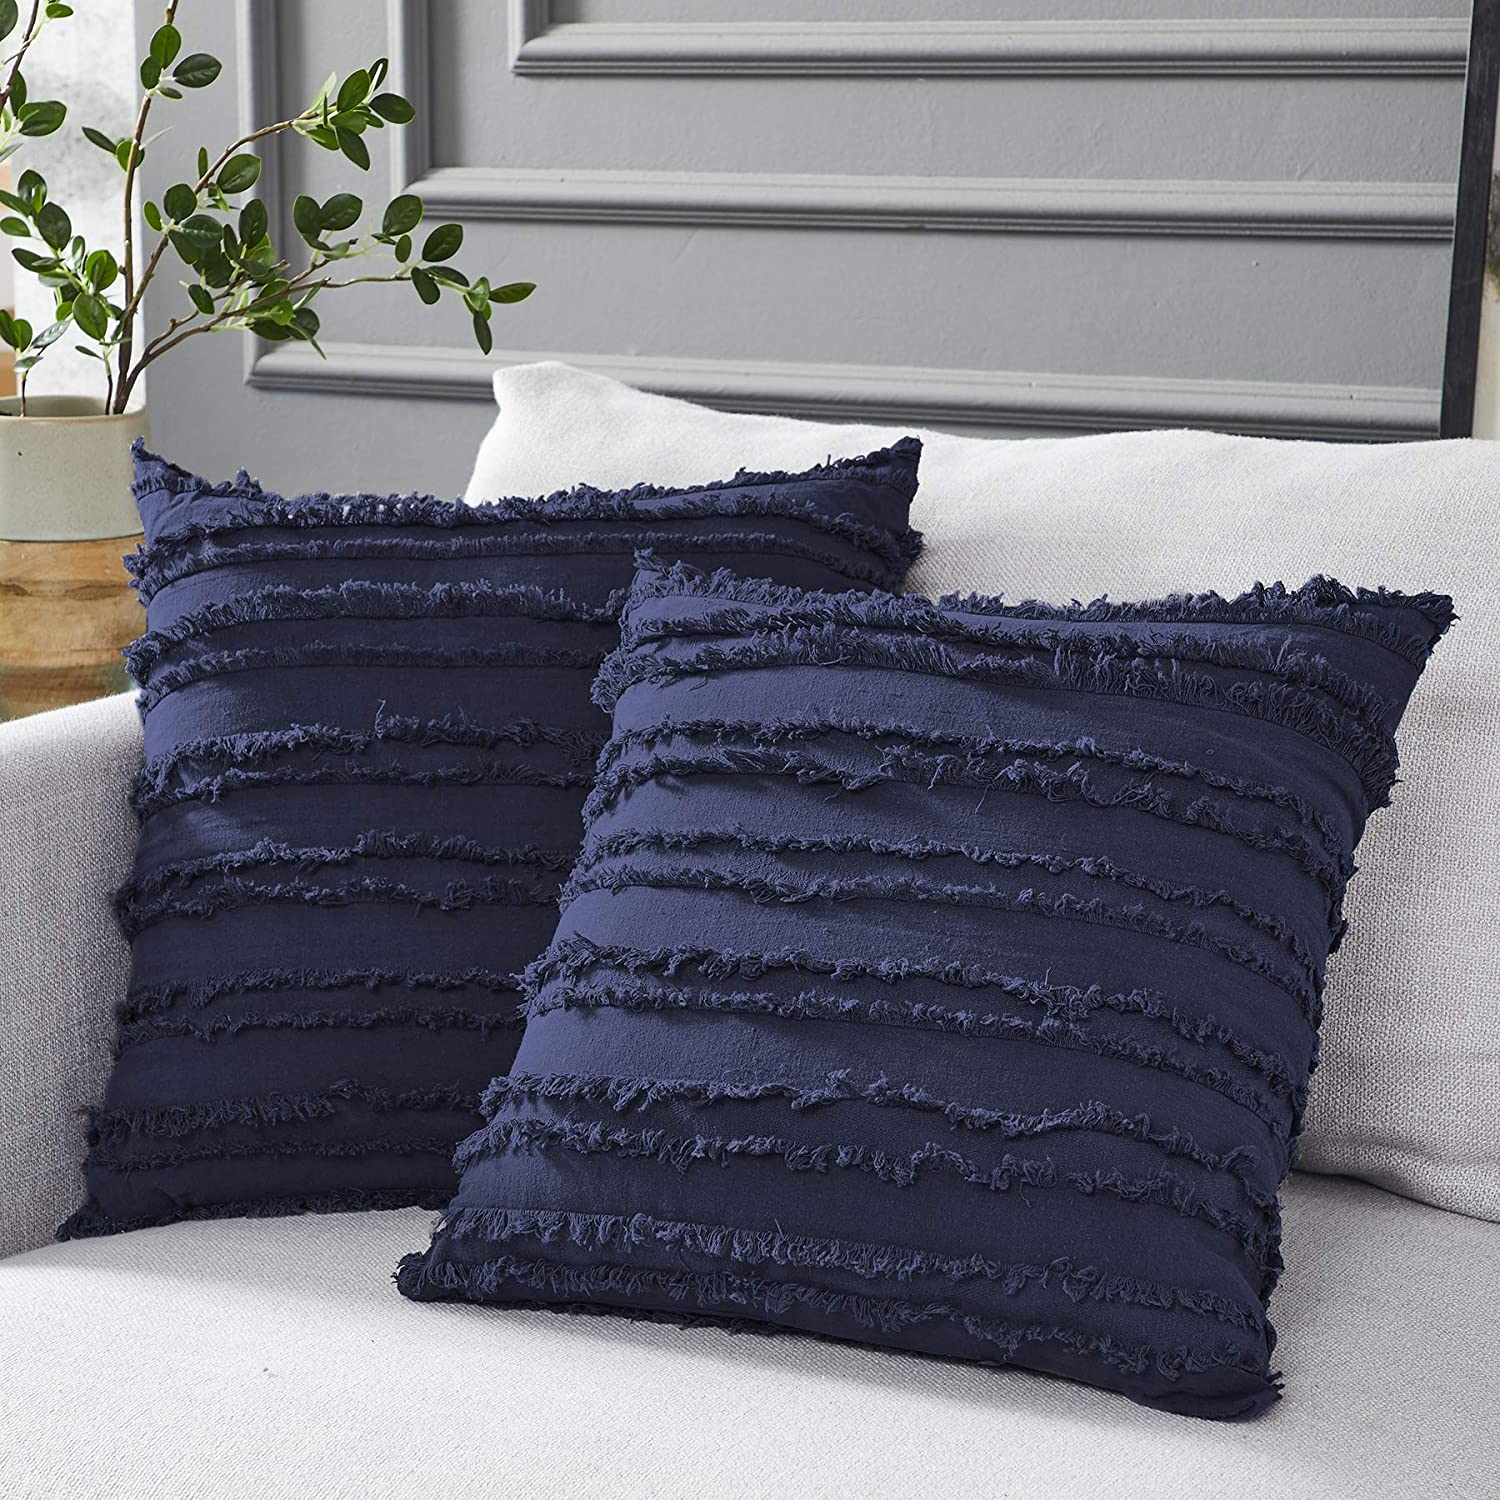 Astonishing Longhui Bedding Navy Blue Throw Pillow Covers For Couch Sofa Bed Cotton Linen Decorative Pillows Cushion Covers 18 X 18 Inches Set Of 2 Ocoug Best Dining Table And Chair Ideas Images Ocougorg